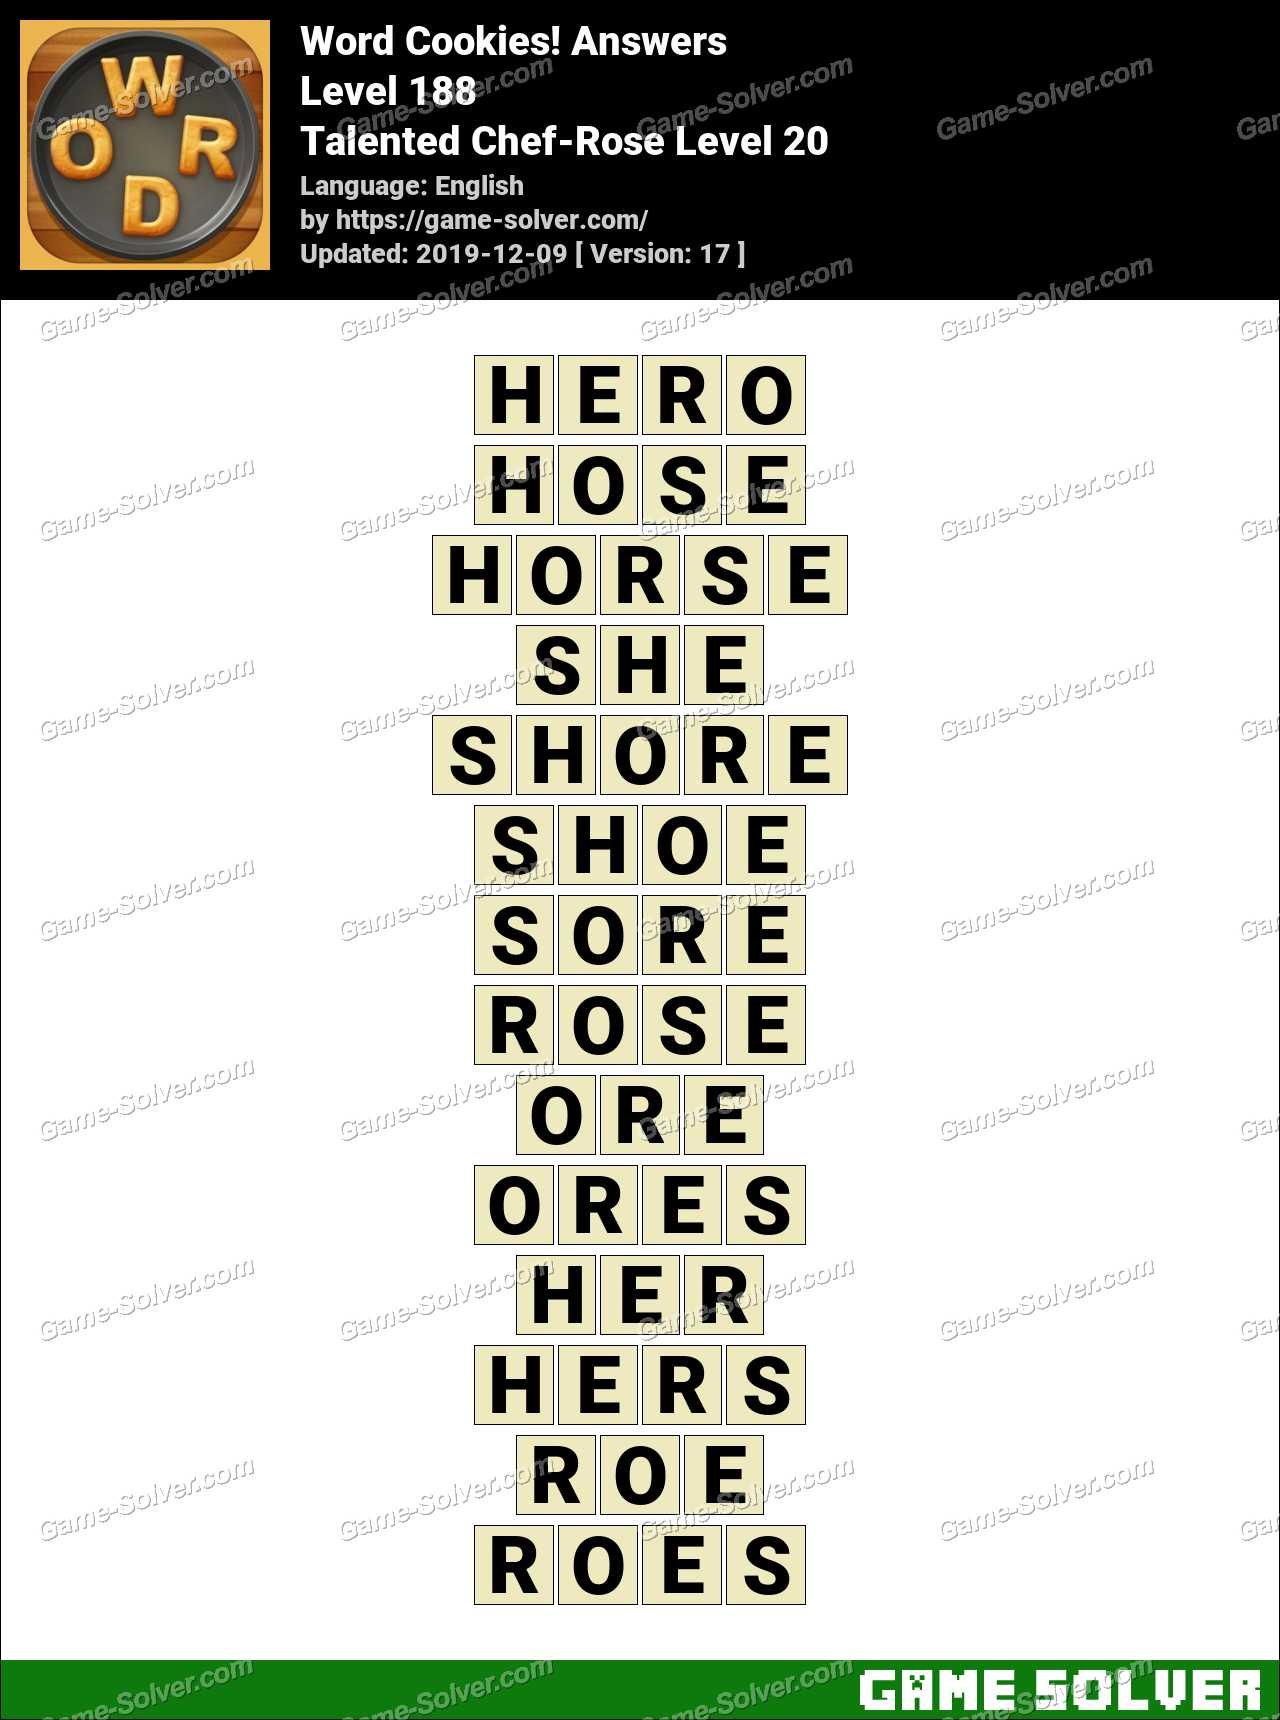 Word Cookies Talented Chef-Rose Level 20 Answers - Game Solver